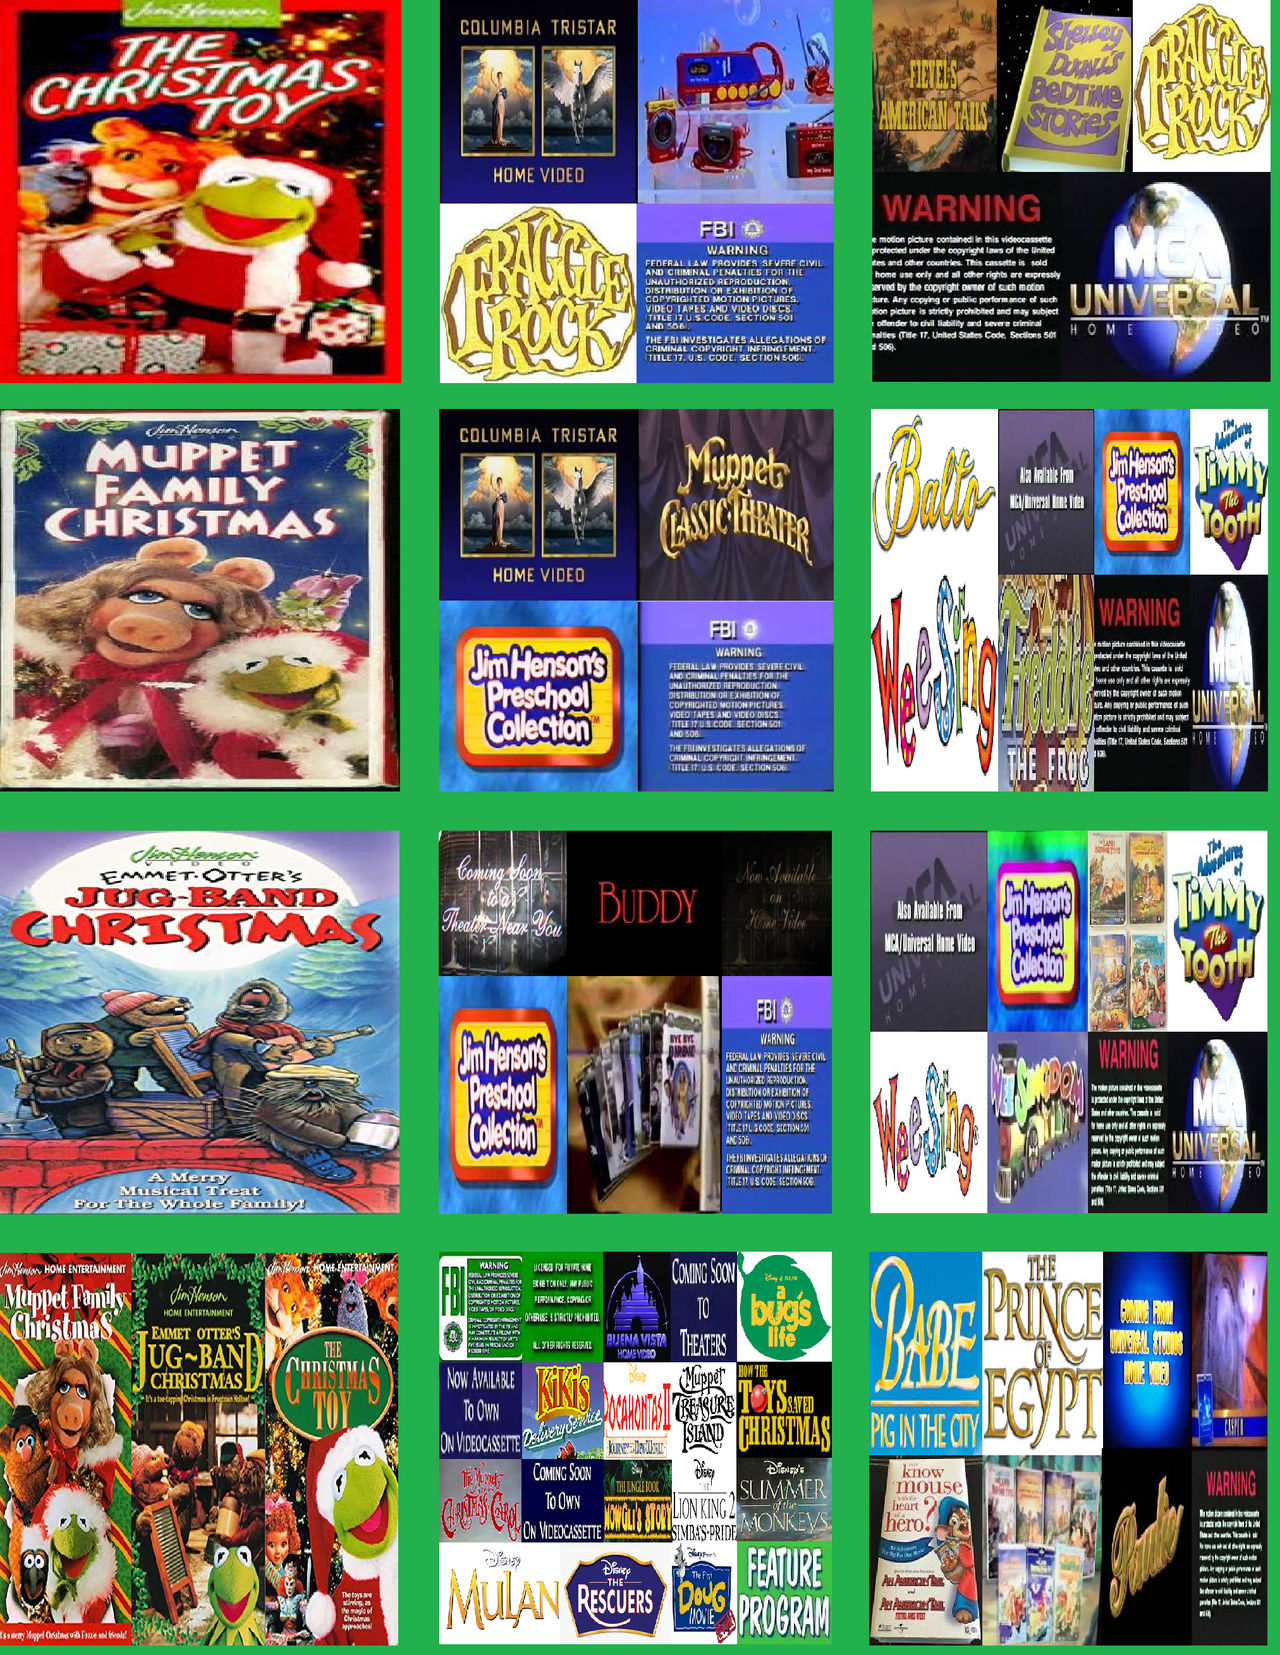 View Wee Sing Mca Universal Home Video Wallpapers